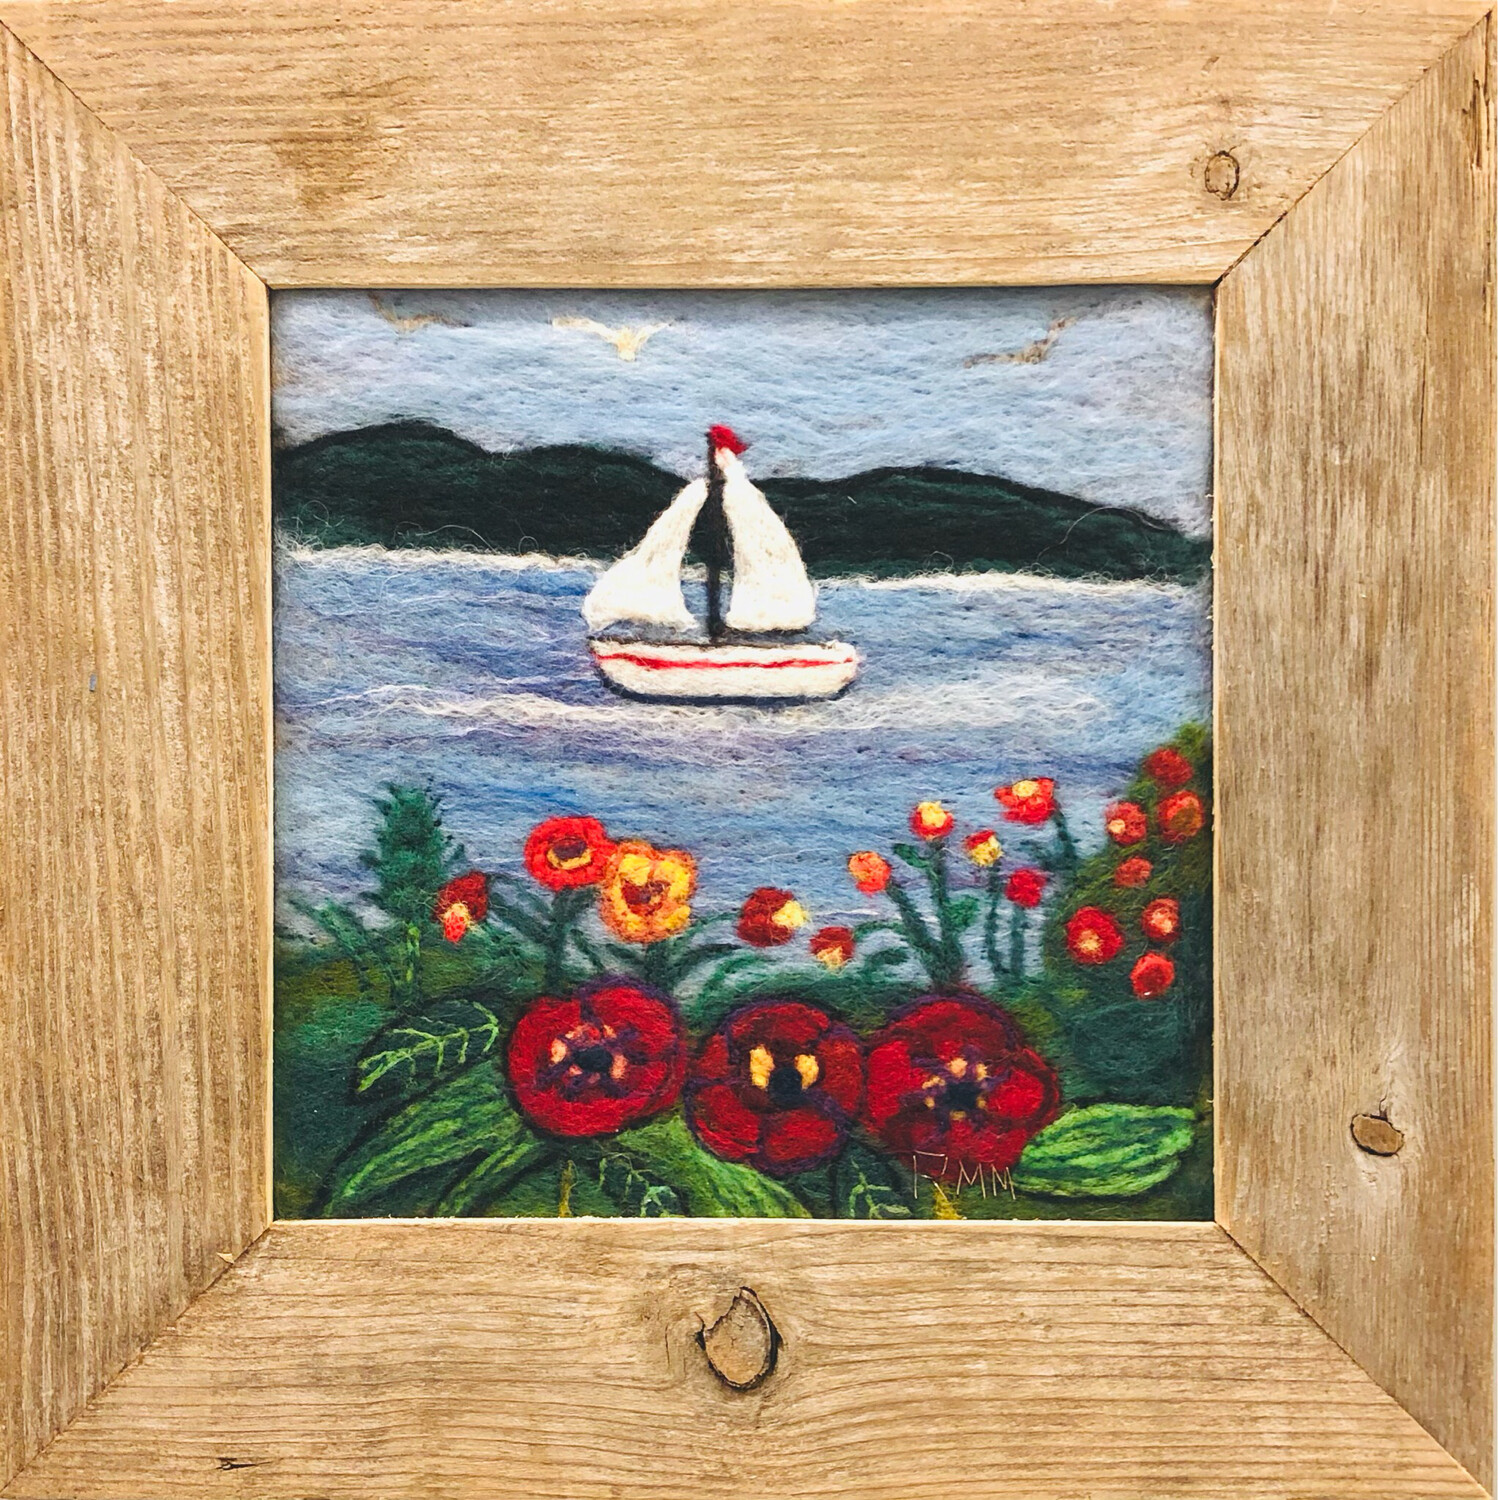 On The Water, Rose Marie MacDonald